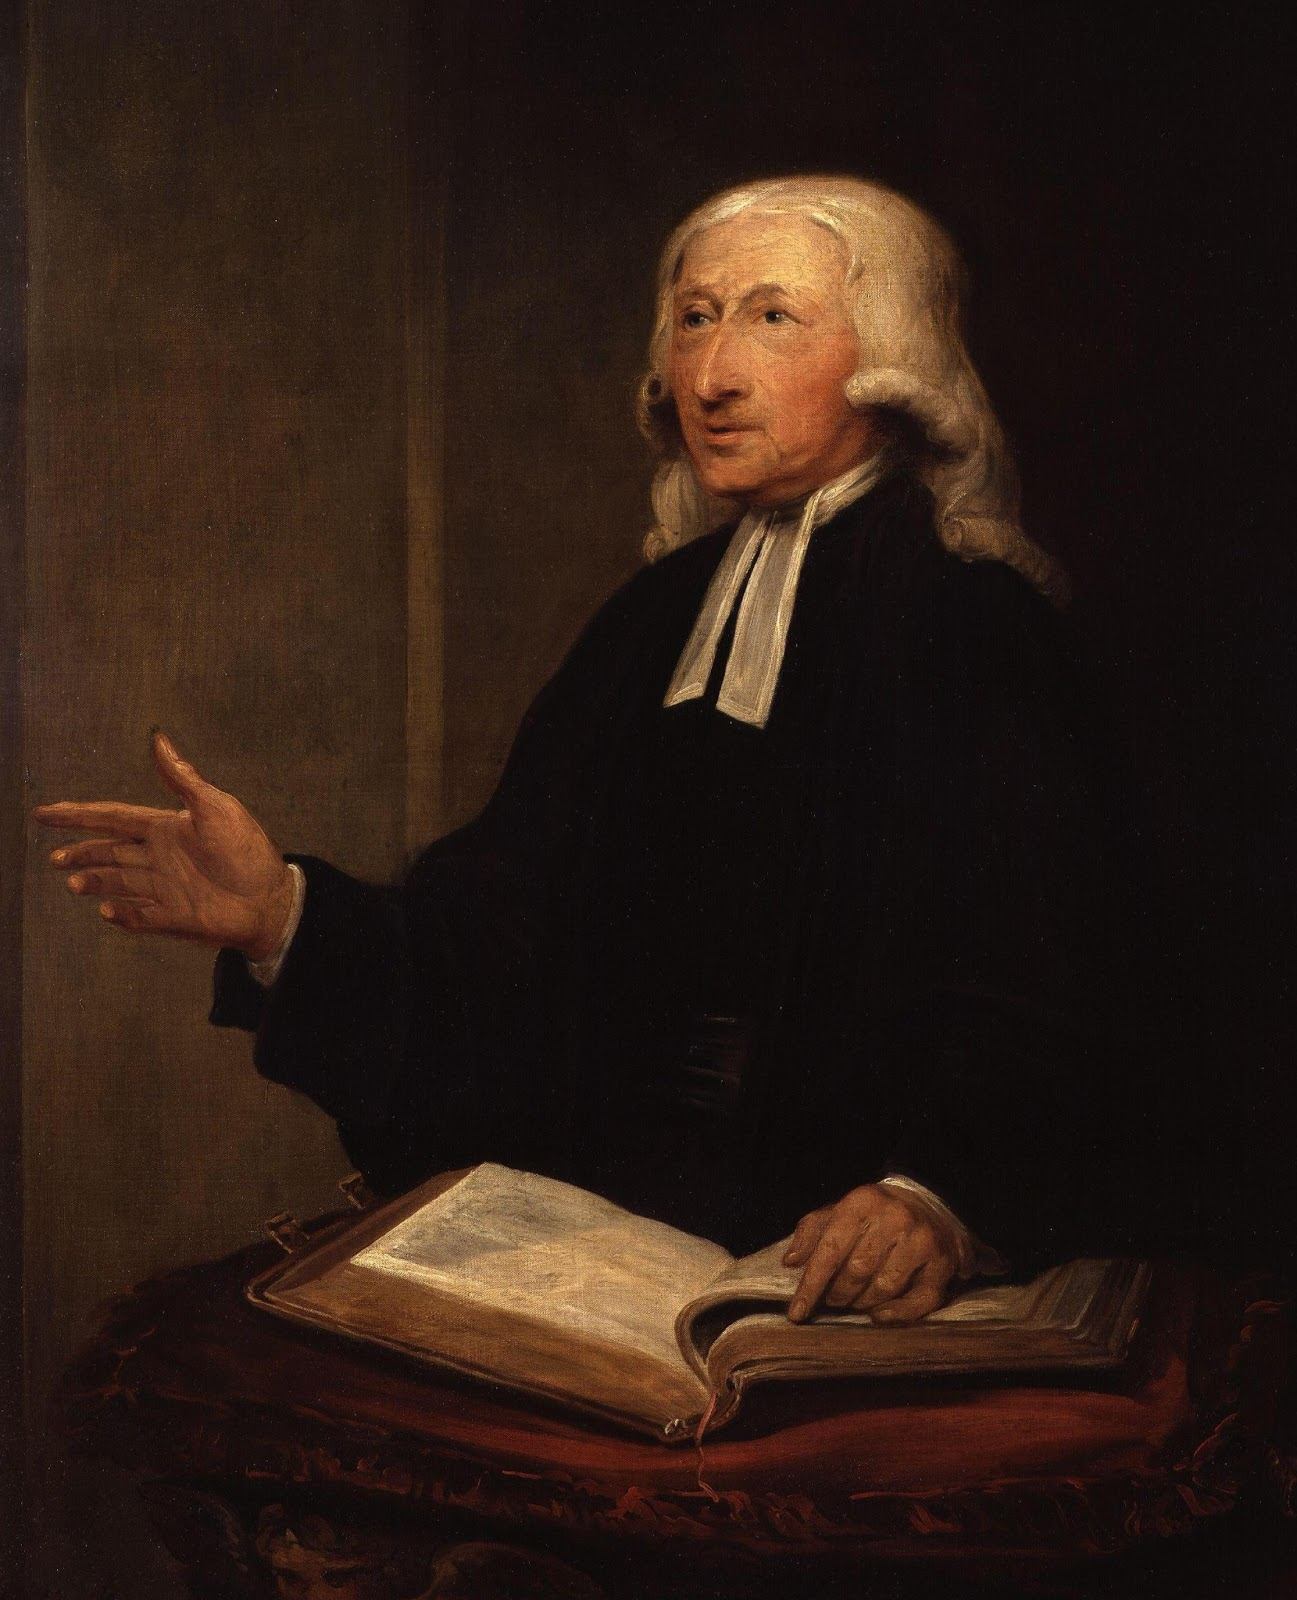 John Wesley, a man of one book (homo unius libri) pointing to the centrality of the Bible in his life.